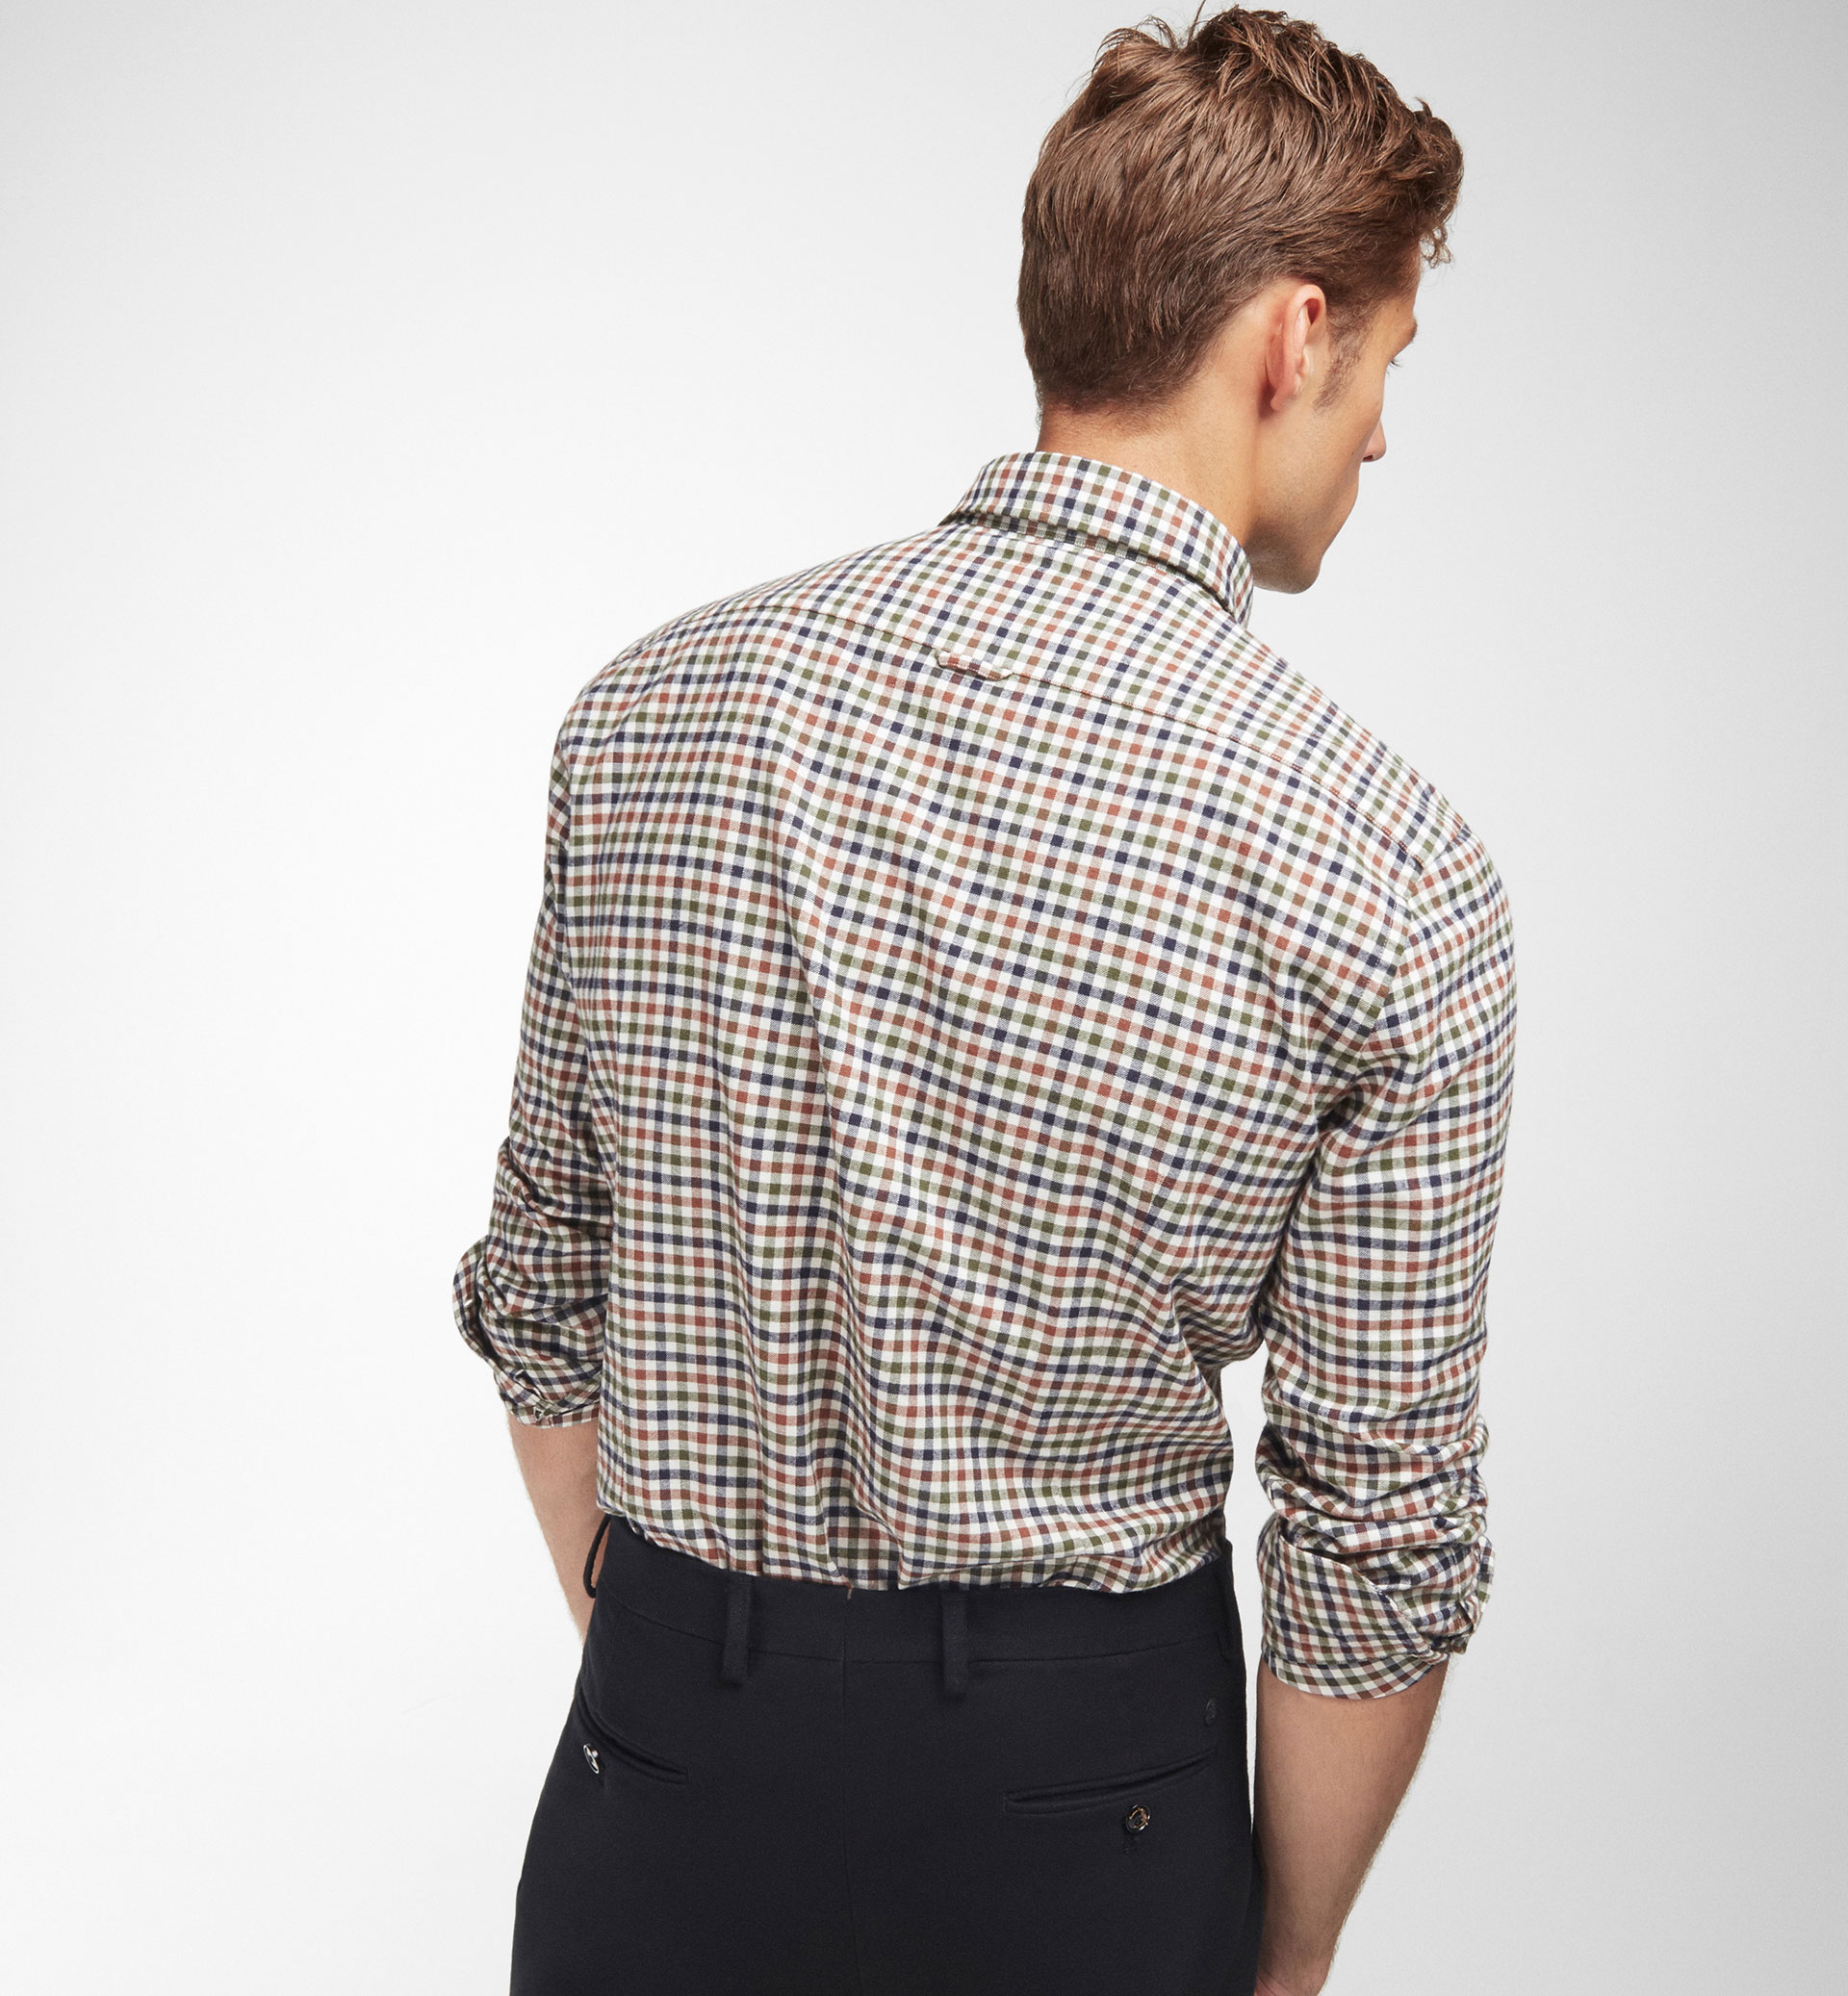 SLIM FIT GINGHAM CHECKED SHIRT WITH BEIGE BACKGROUND